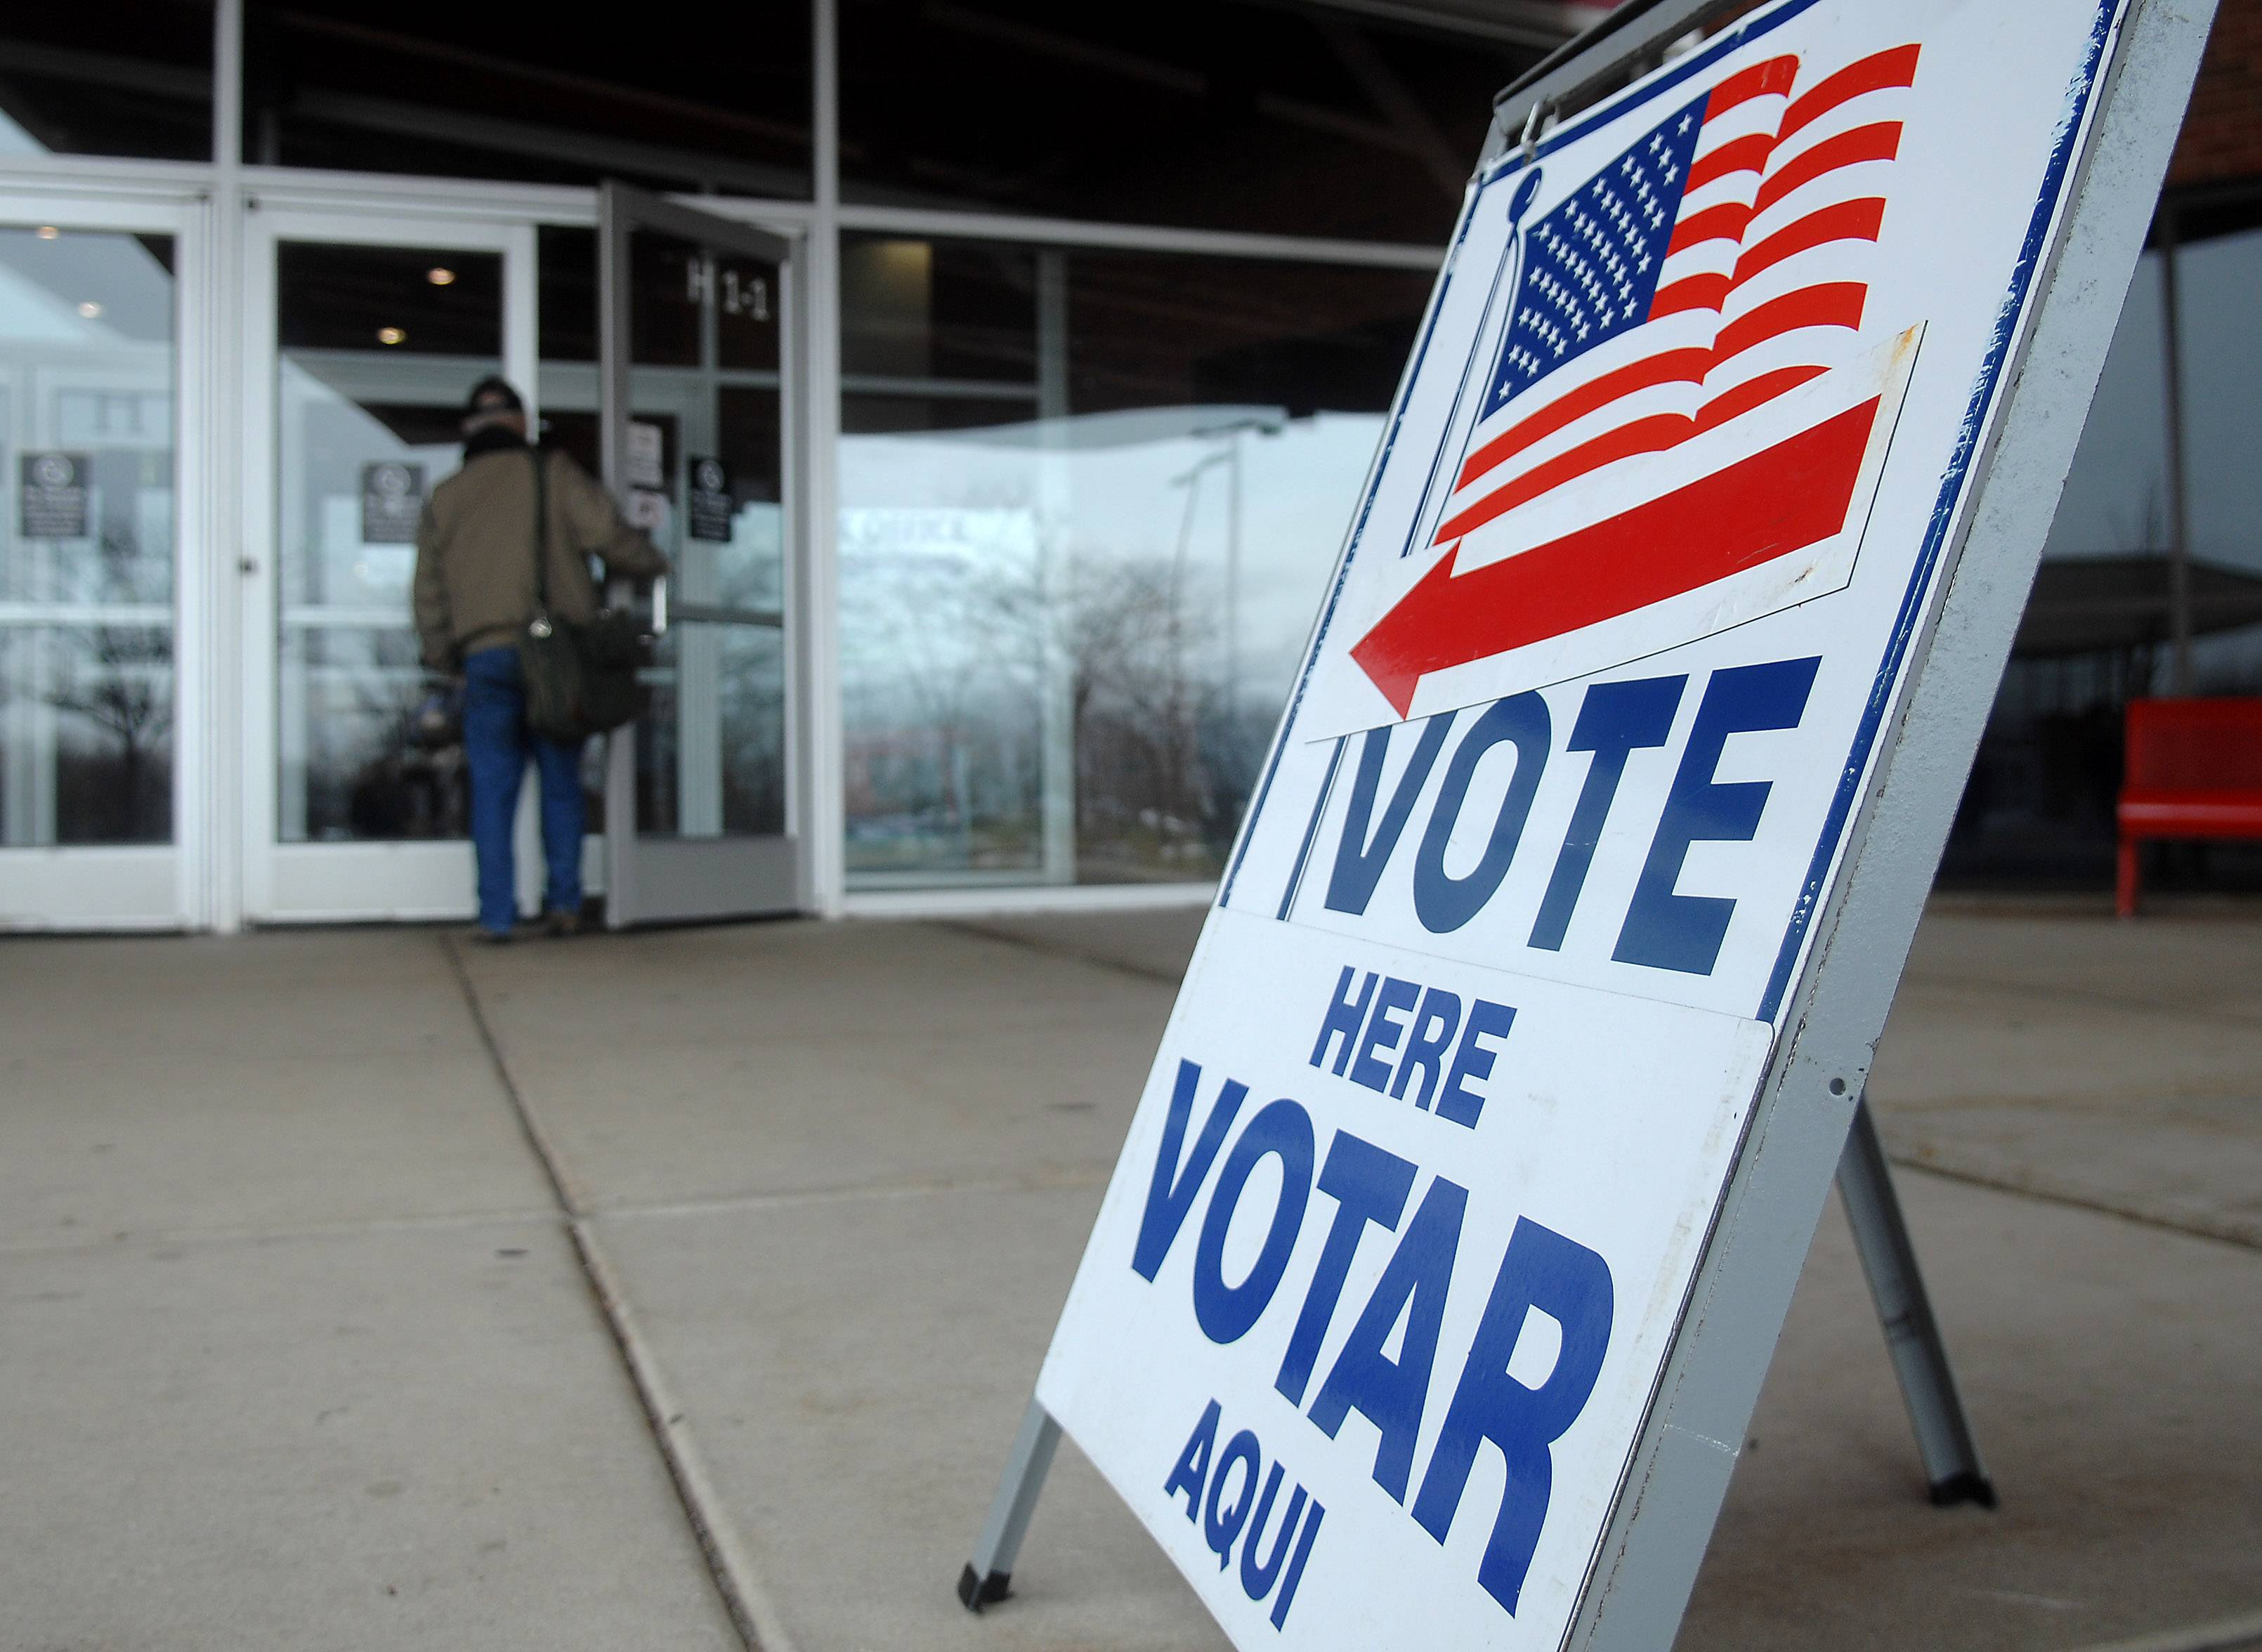 Lake County polls open until 9 for same-day registration